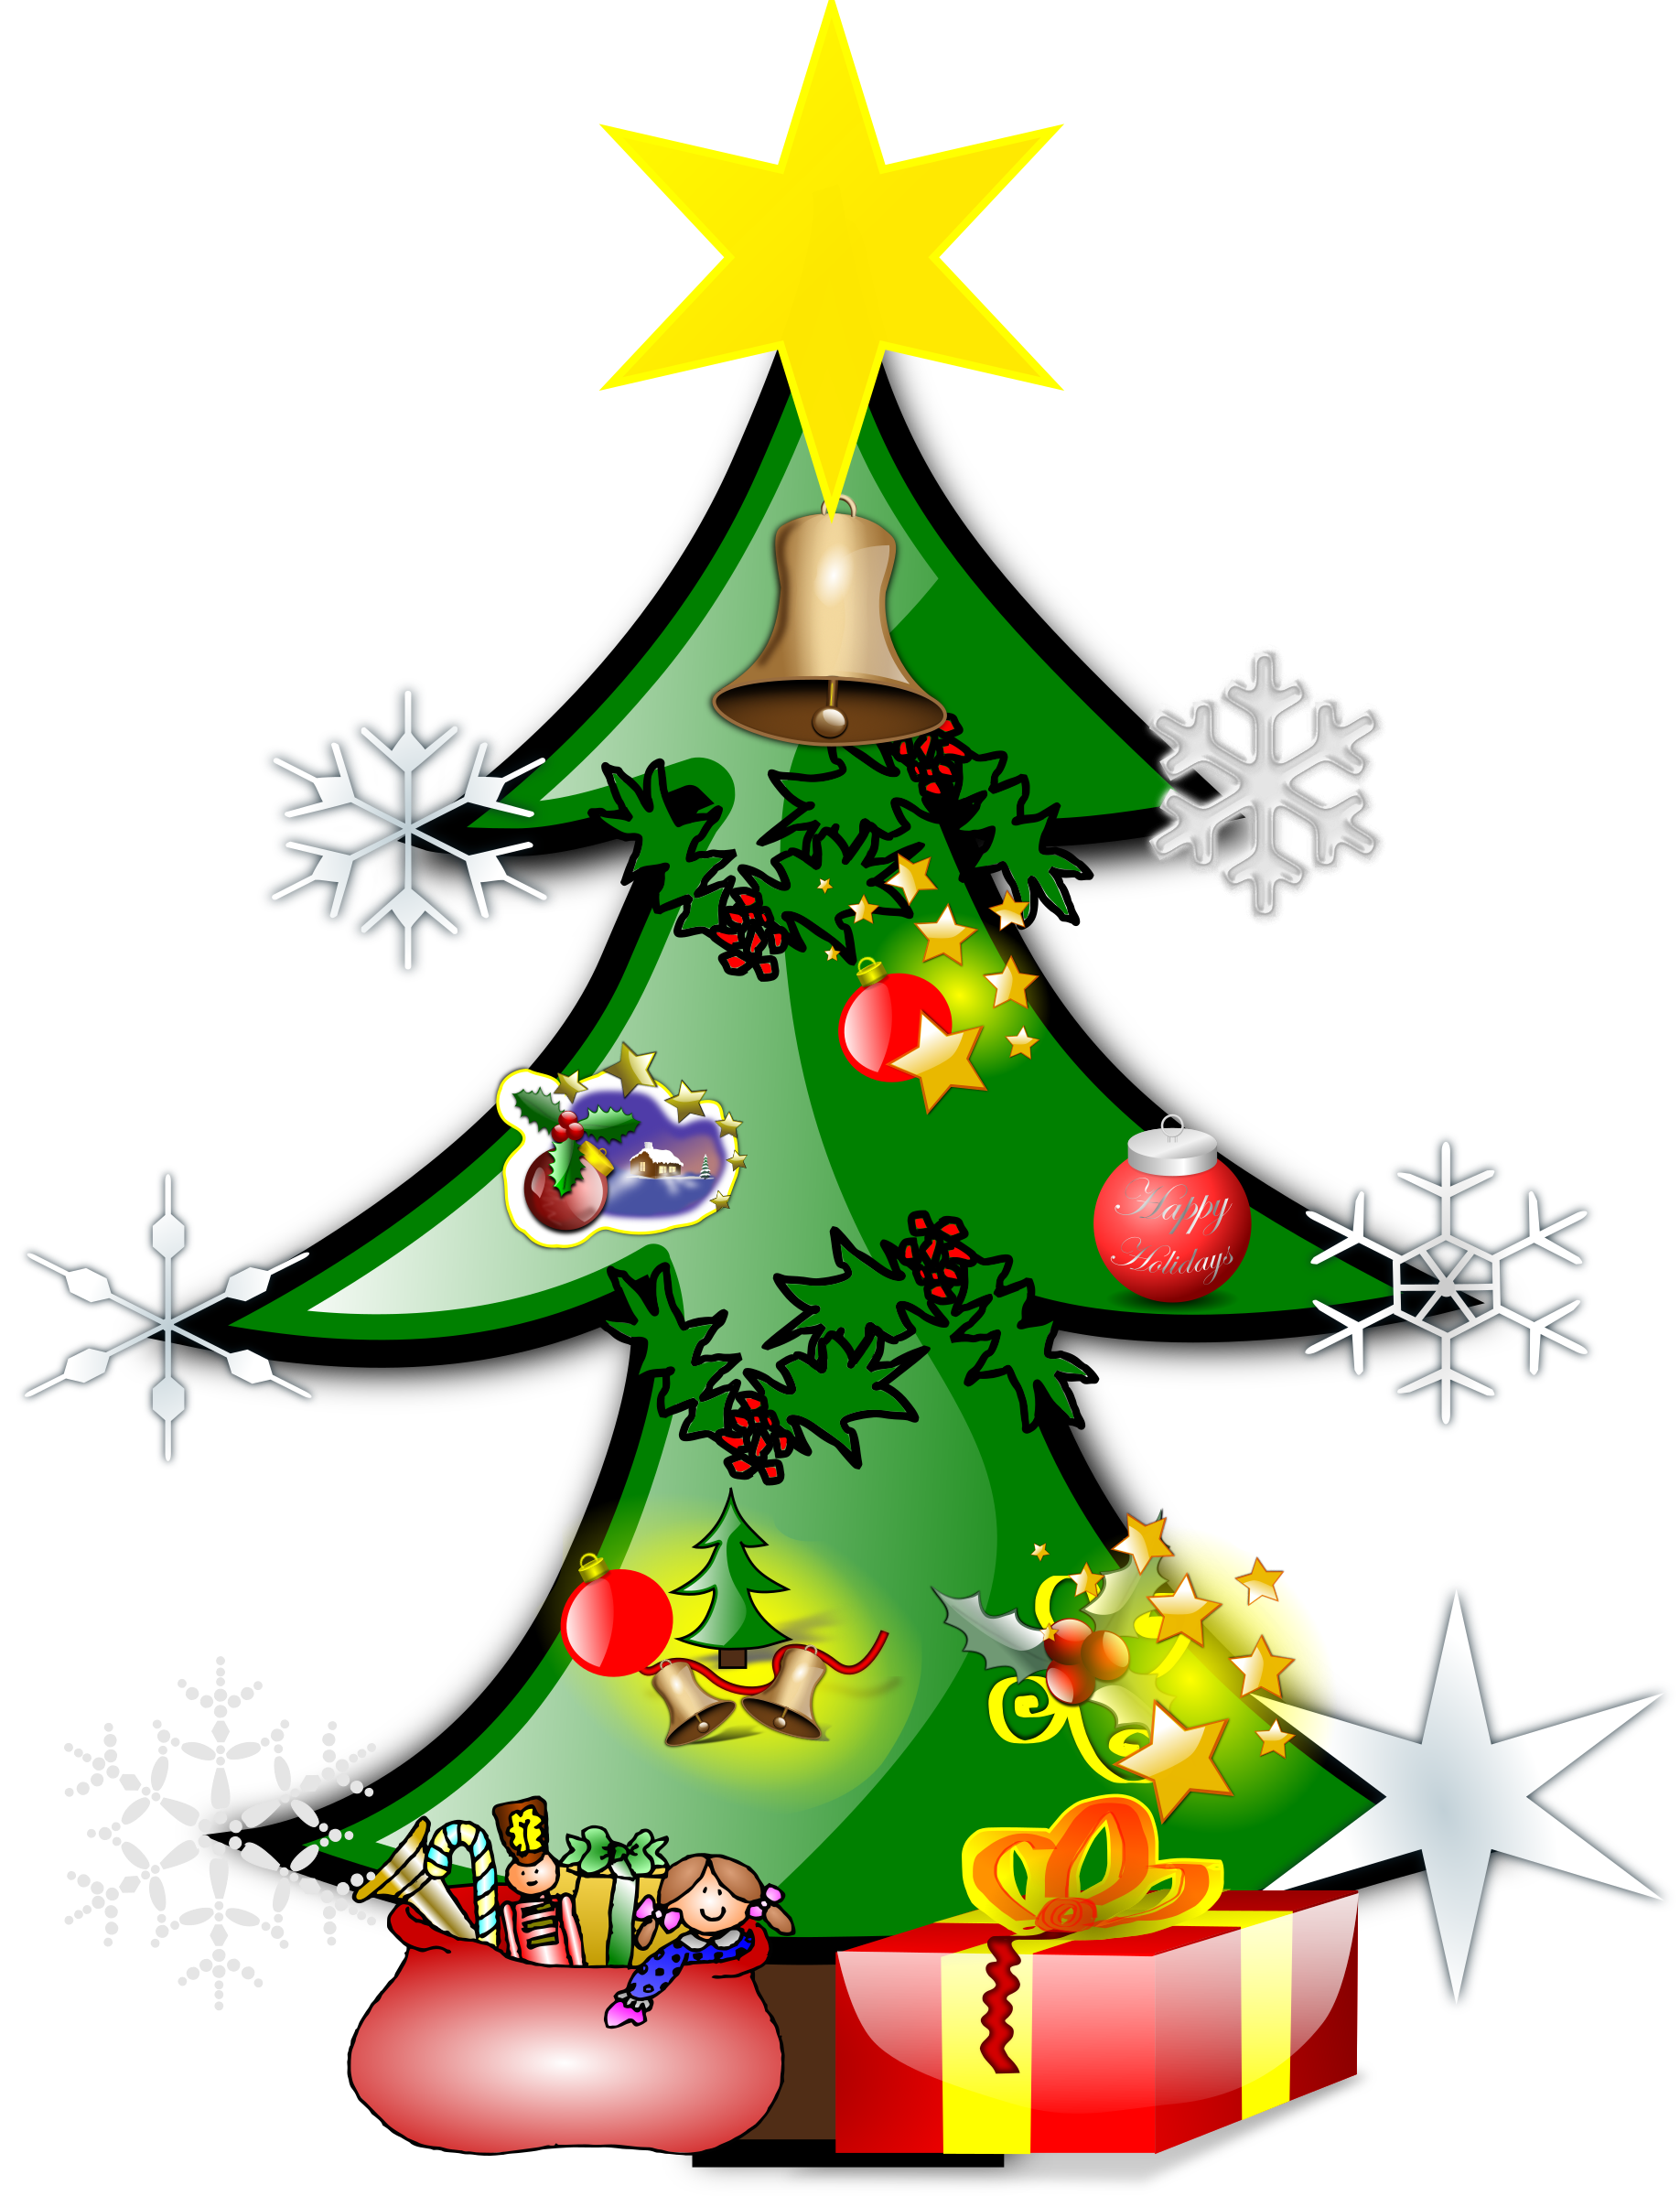 Christmas tree by @star4clover, Christmas tree, on @openclipart ...